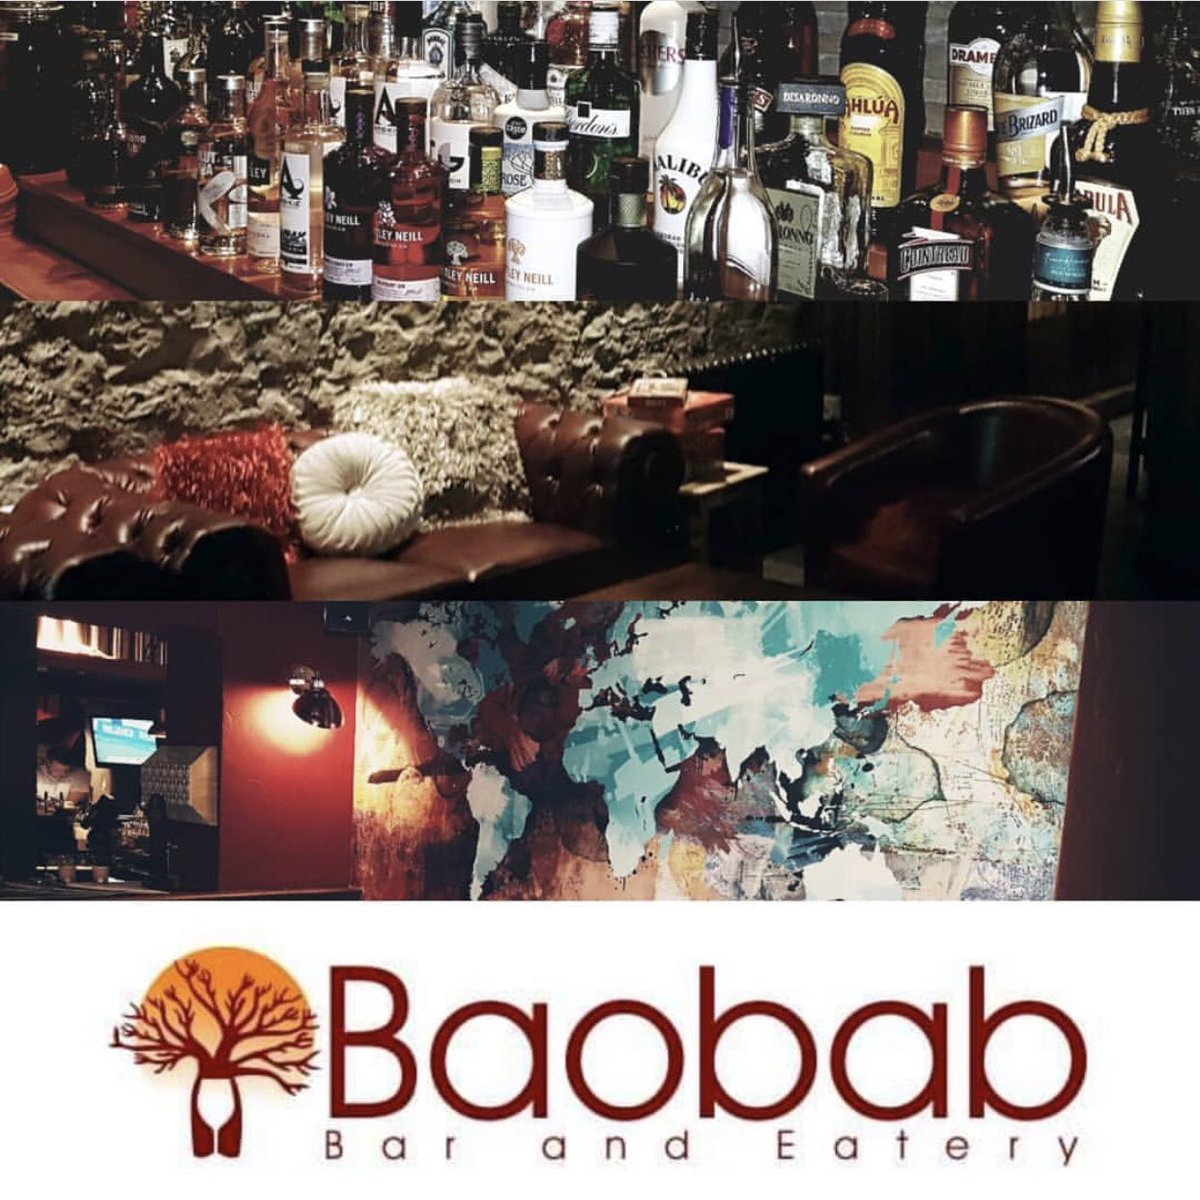 New to the West End, Baobab Bar & Eatery . . . Street food, South African style 🇿🇦  . . . #hiddengems #takeacloserlook #thisisedinburgh #edinburgh